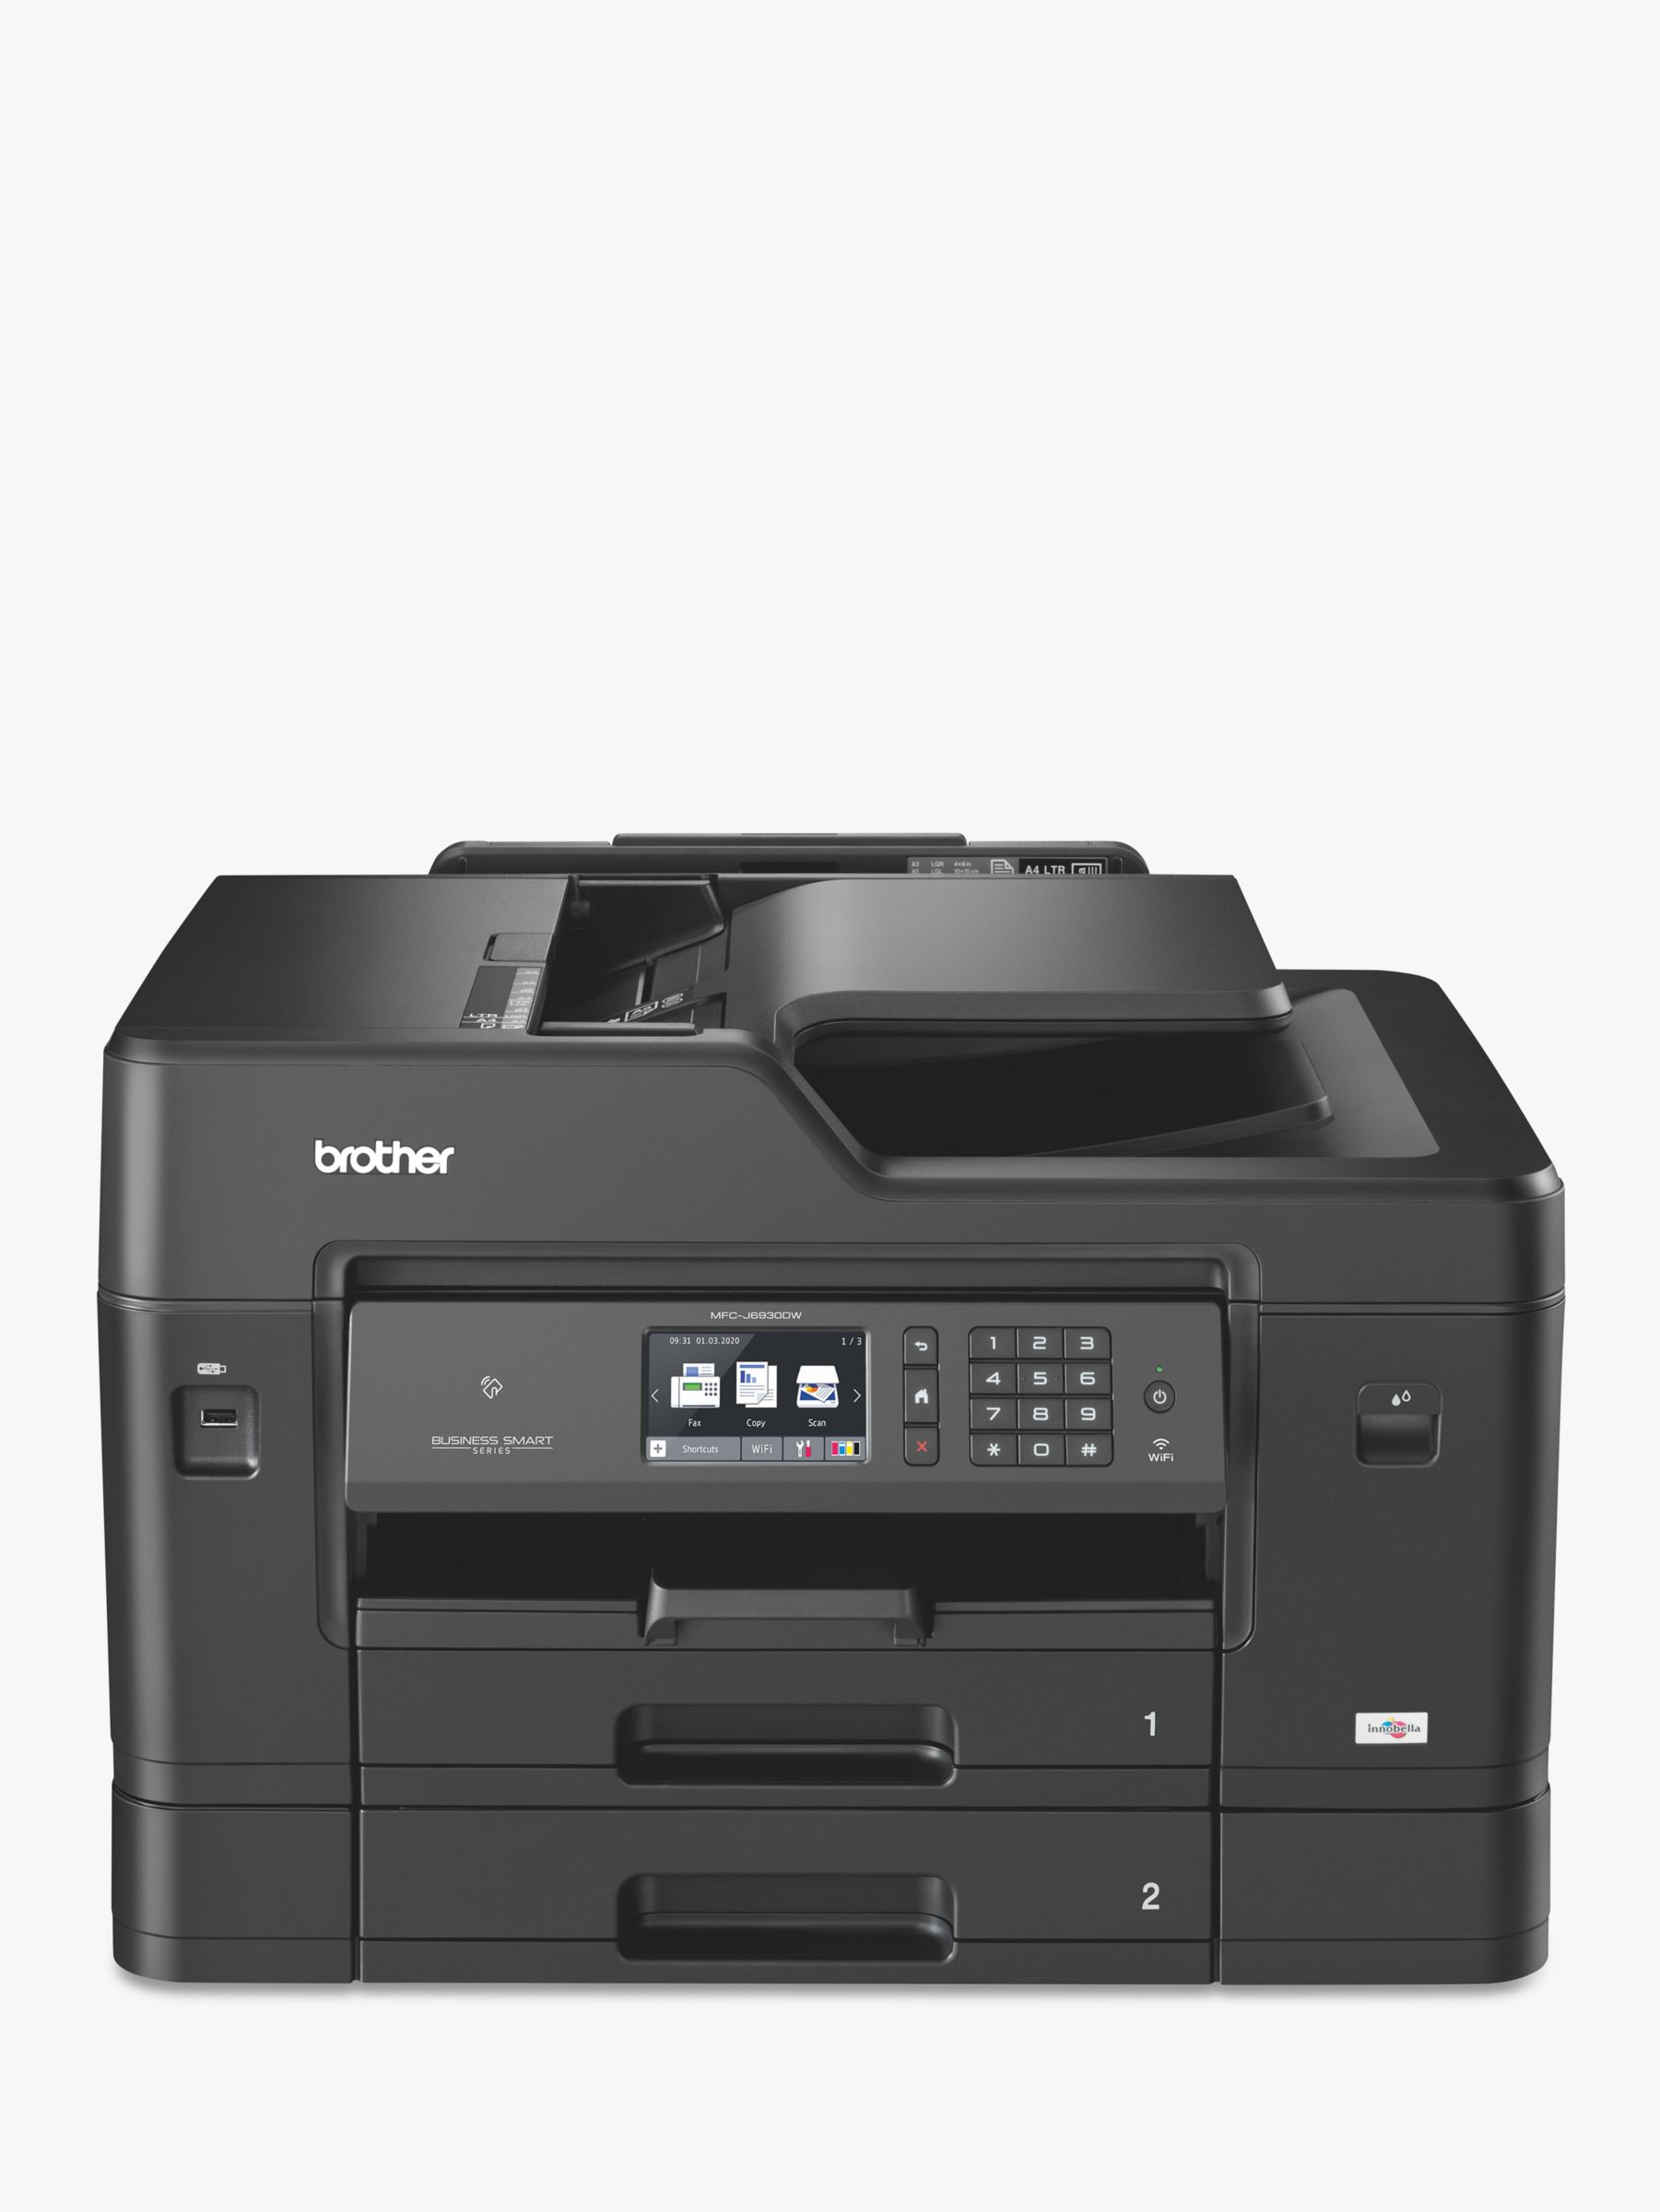 Brother Brother MFC-J6930DW Wireless All-in-One A3 Colour Inkjet Printer & Fax Machine with NFC